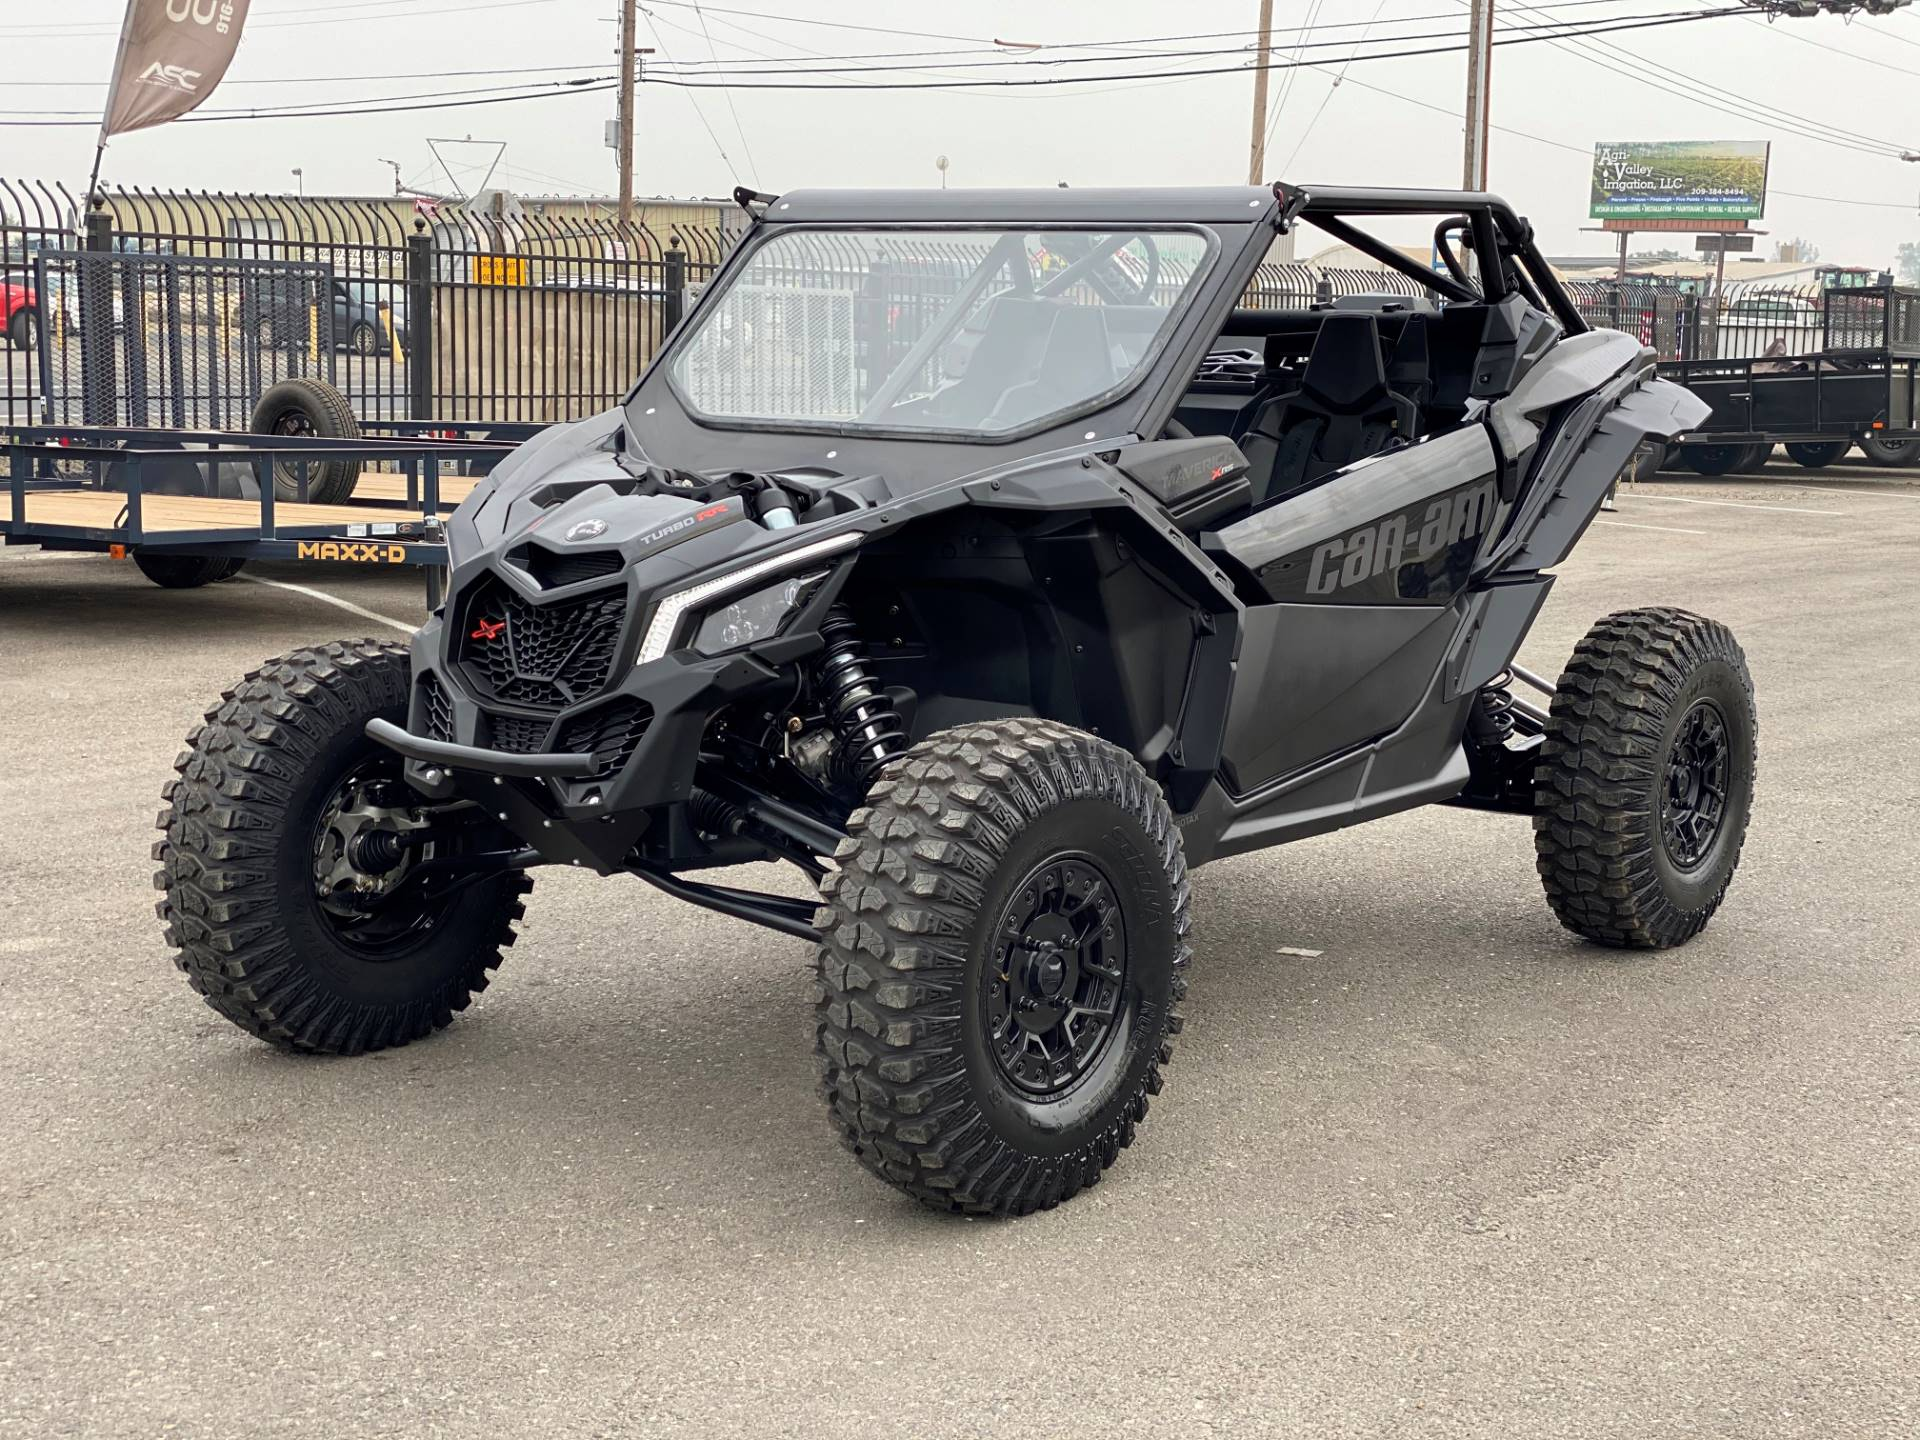 2020 Can-Am Maverick X3 X RS Turbo RR in Merced, California - Photo 1